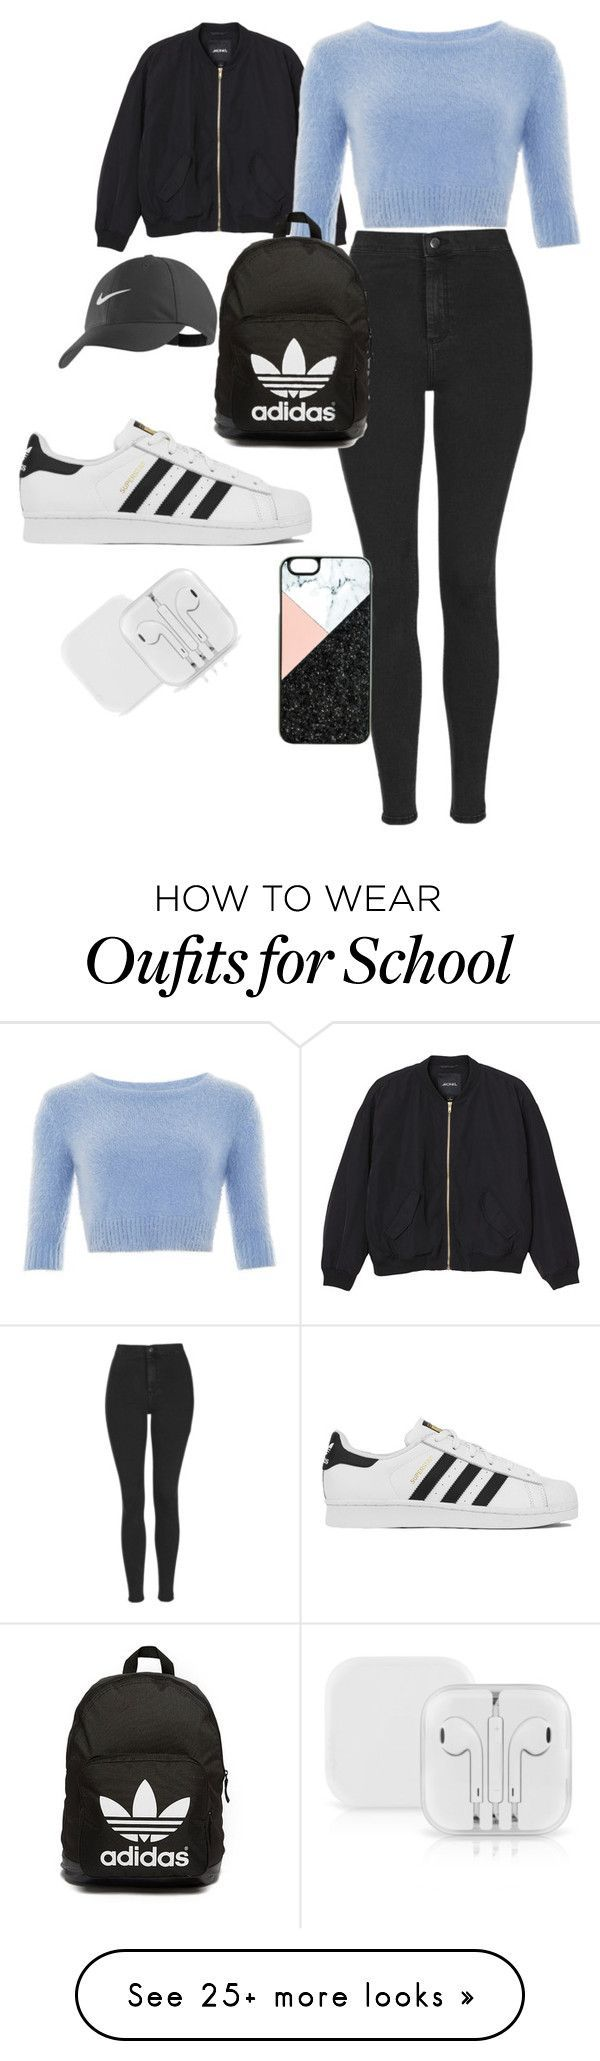 School Outfit by halldoraeinarsdottir on Polyvore featuring Monki, Topshop, adidas, adidas Originals, NIKE, BaubleBar, womens clothing, women, female and woman